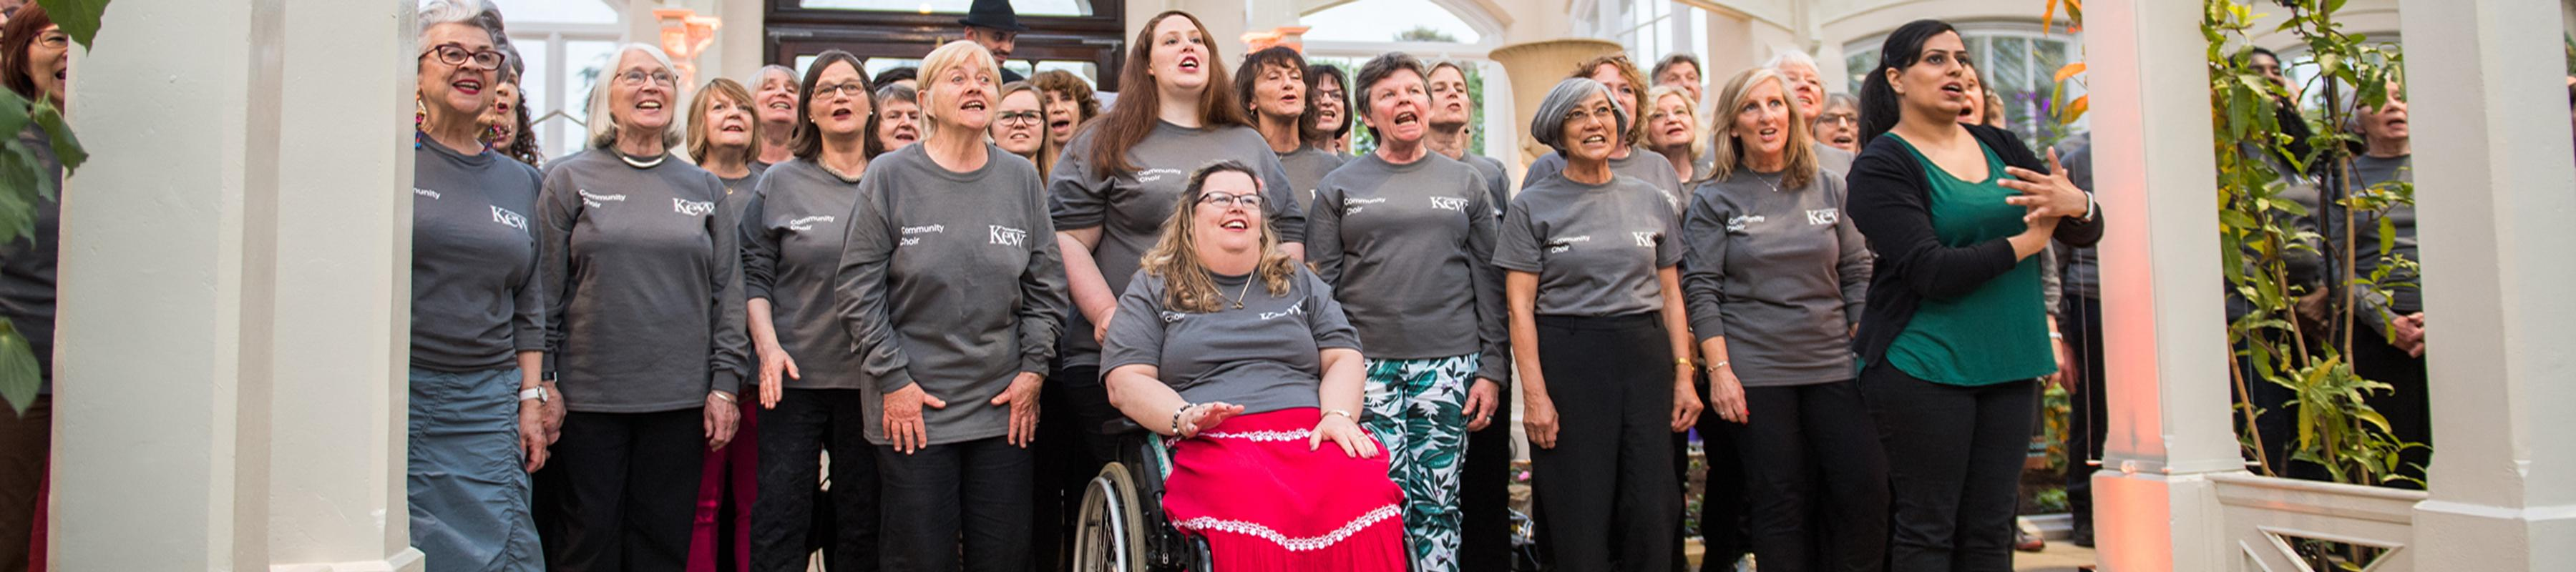 The community choir singing in the Temperate House